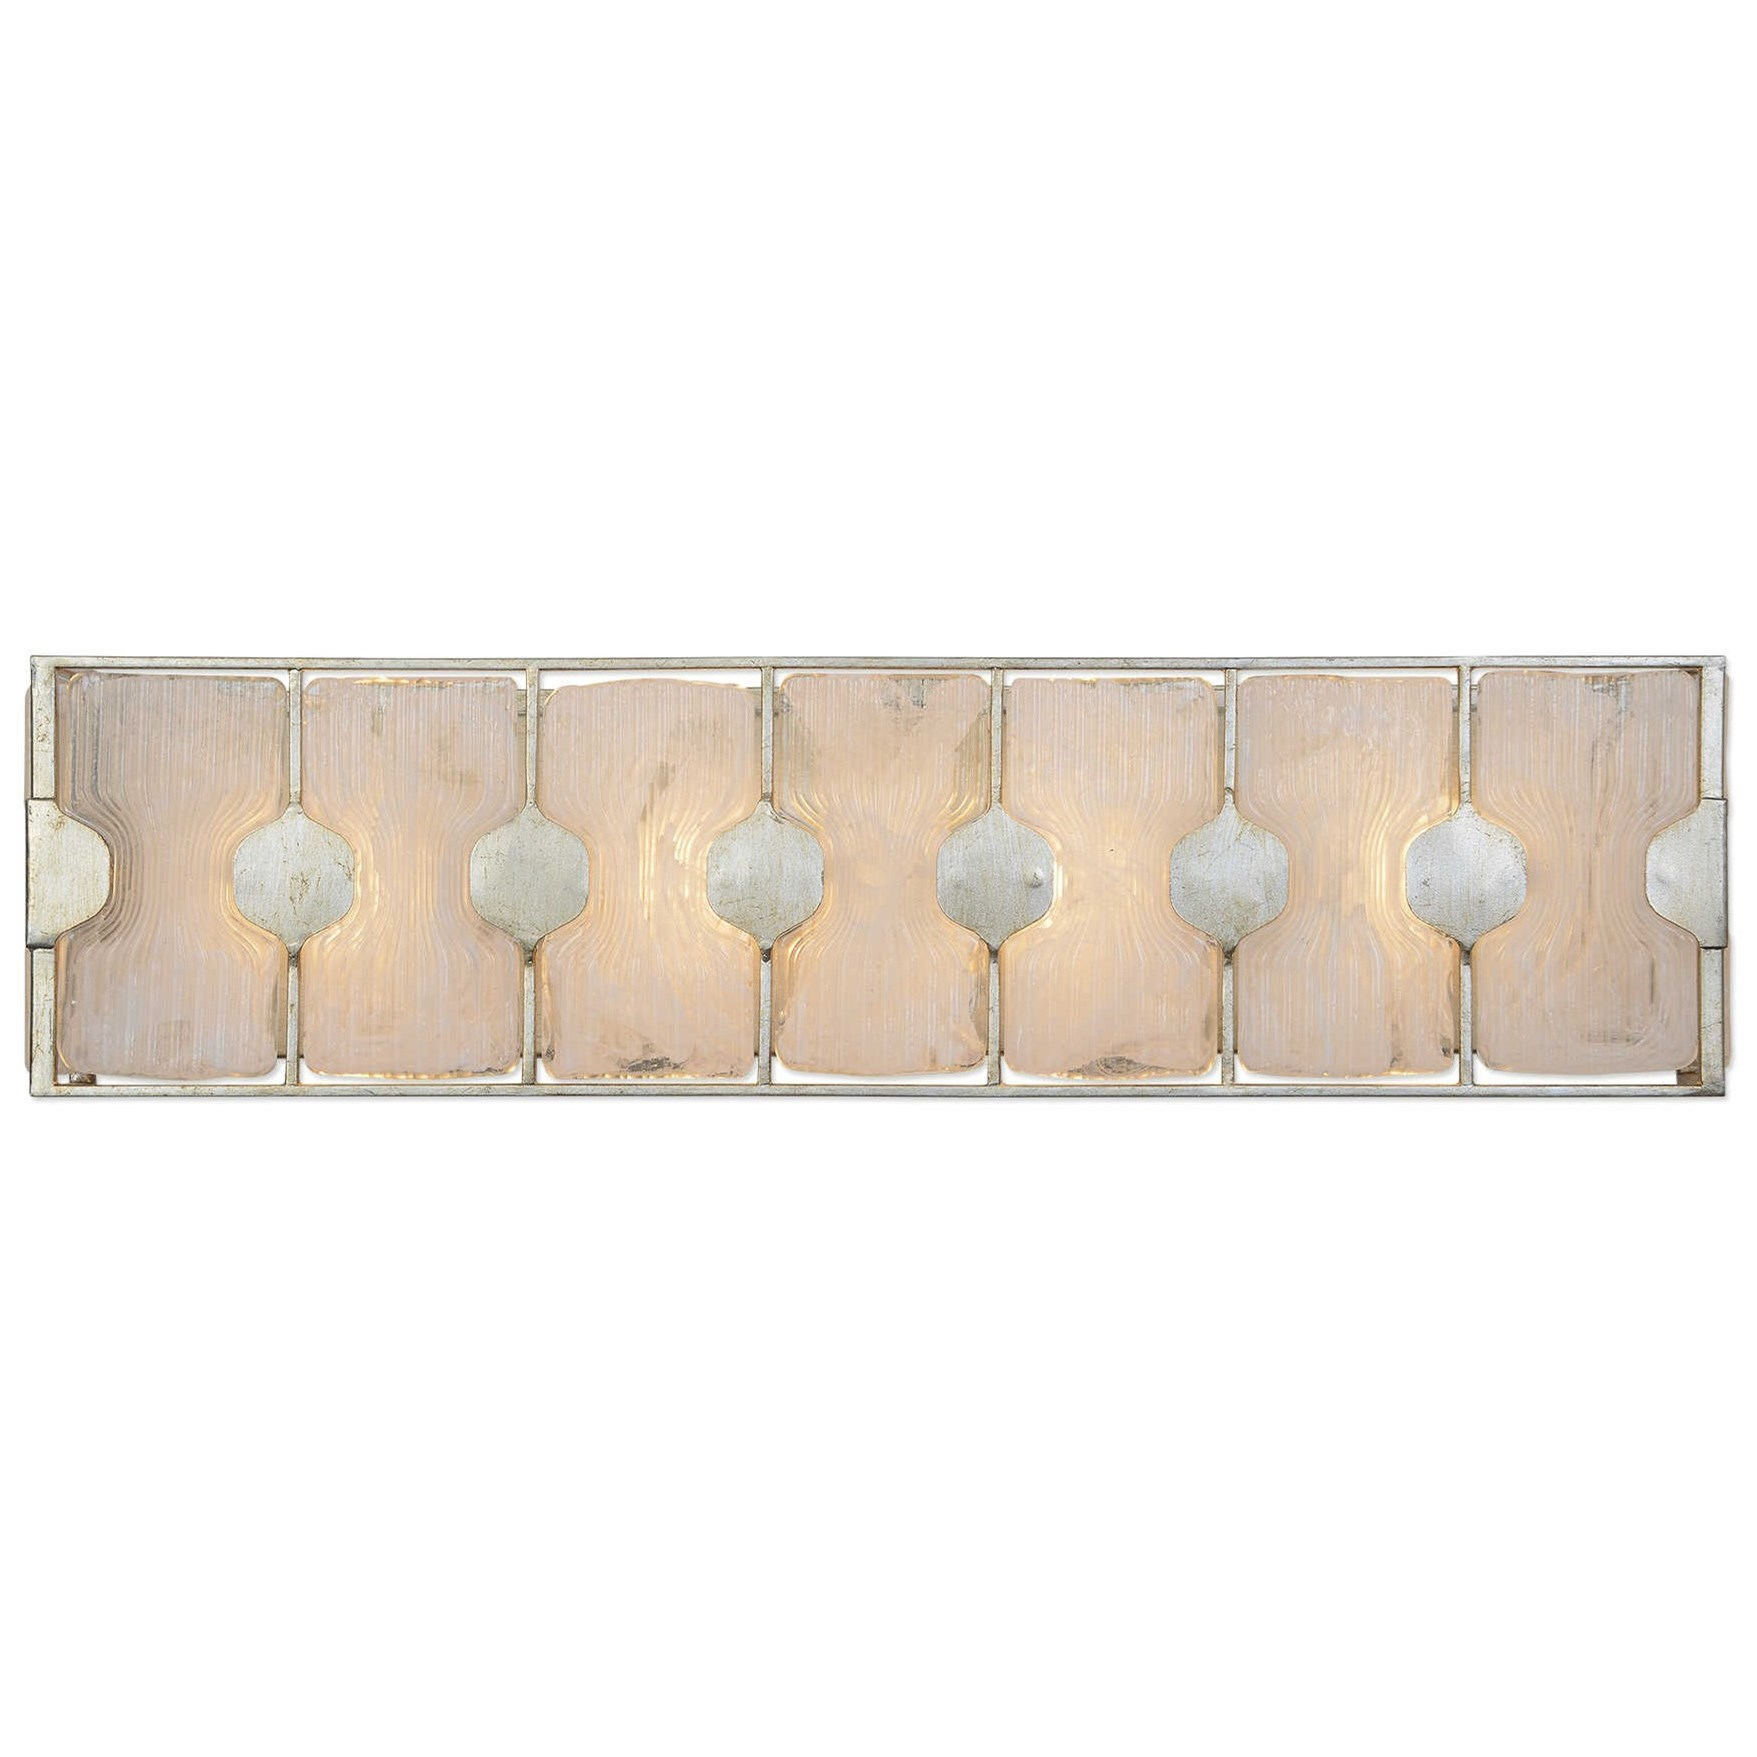 Lighting Fixtures - Wall Sconces Rene 4 Light Swirl Glass Vanity by Uttermost at Mueller Furniture